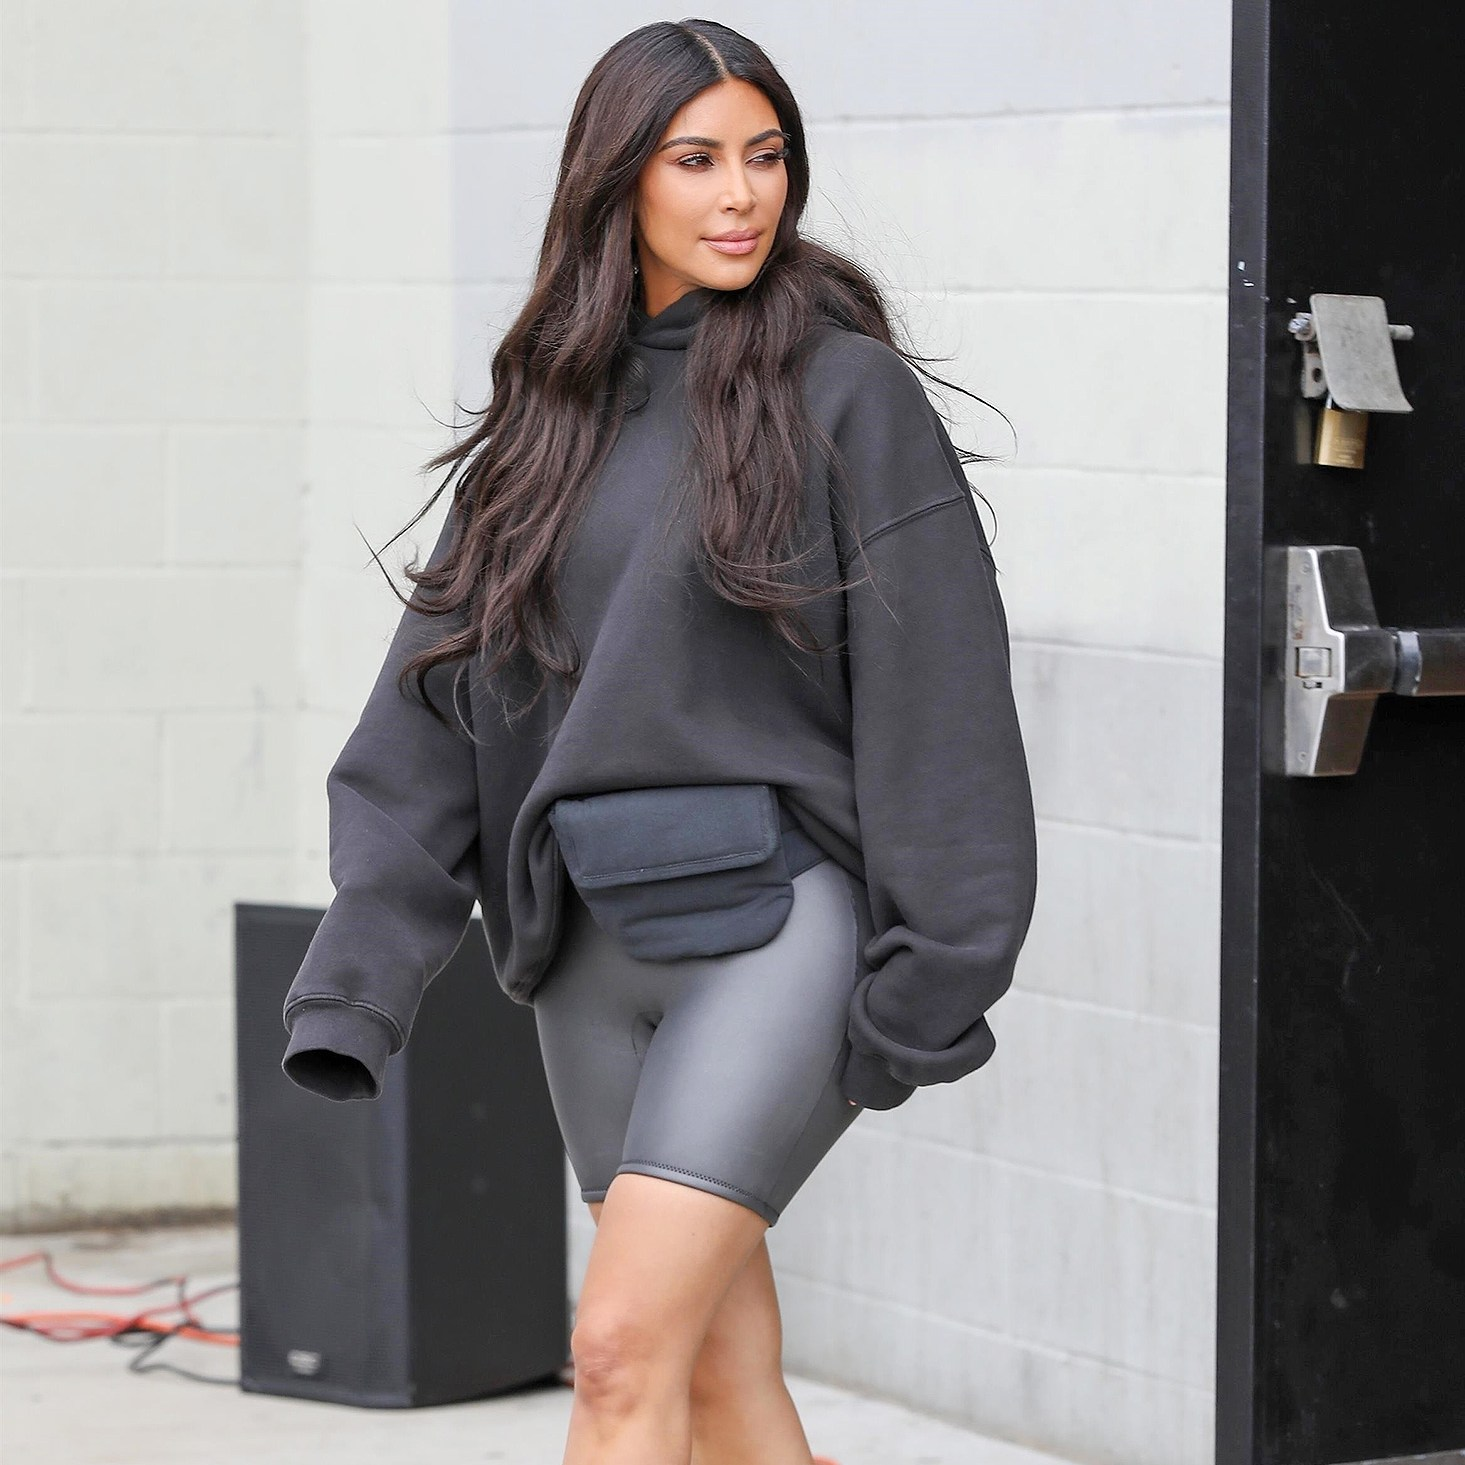 Kim Kardashian, Watts Empowerment Center, Key to our Hearts